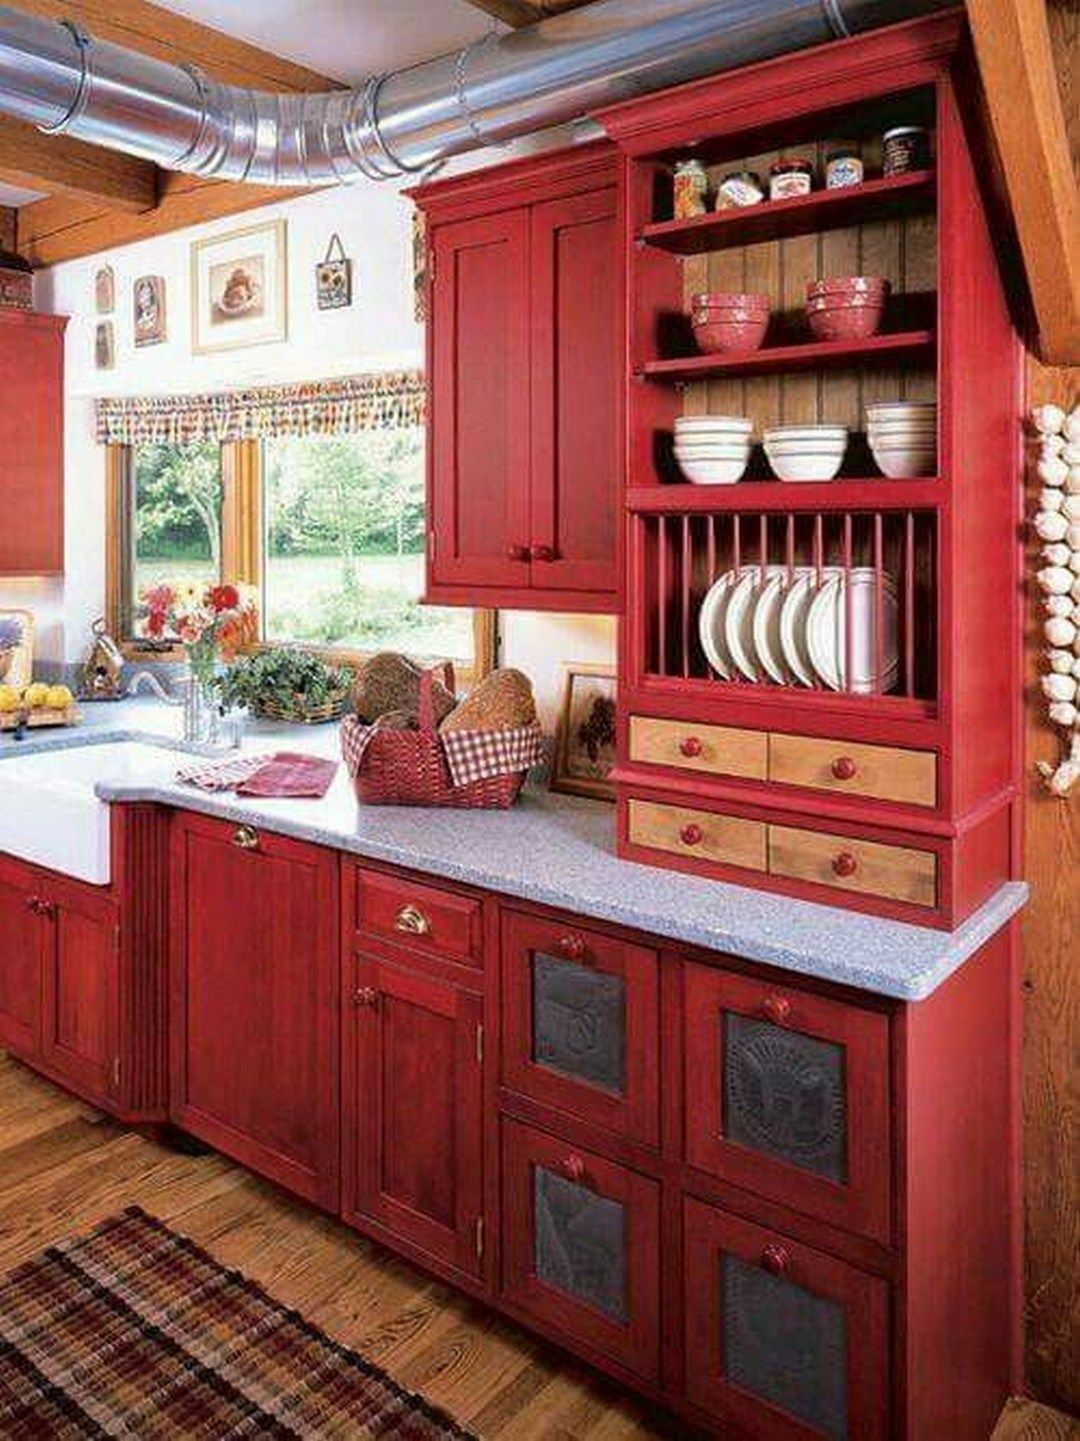 Farmhouse Decorating Style 99 Ideas For Living Room And Kitchen (80)